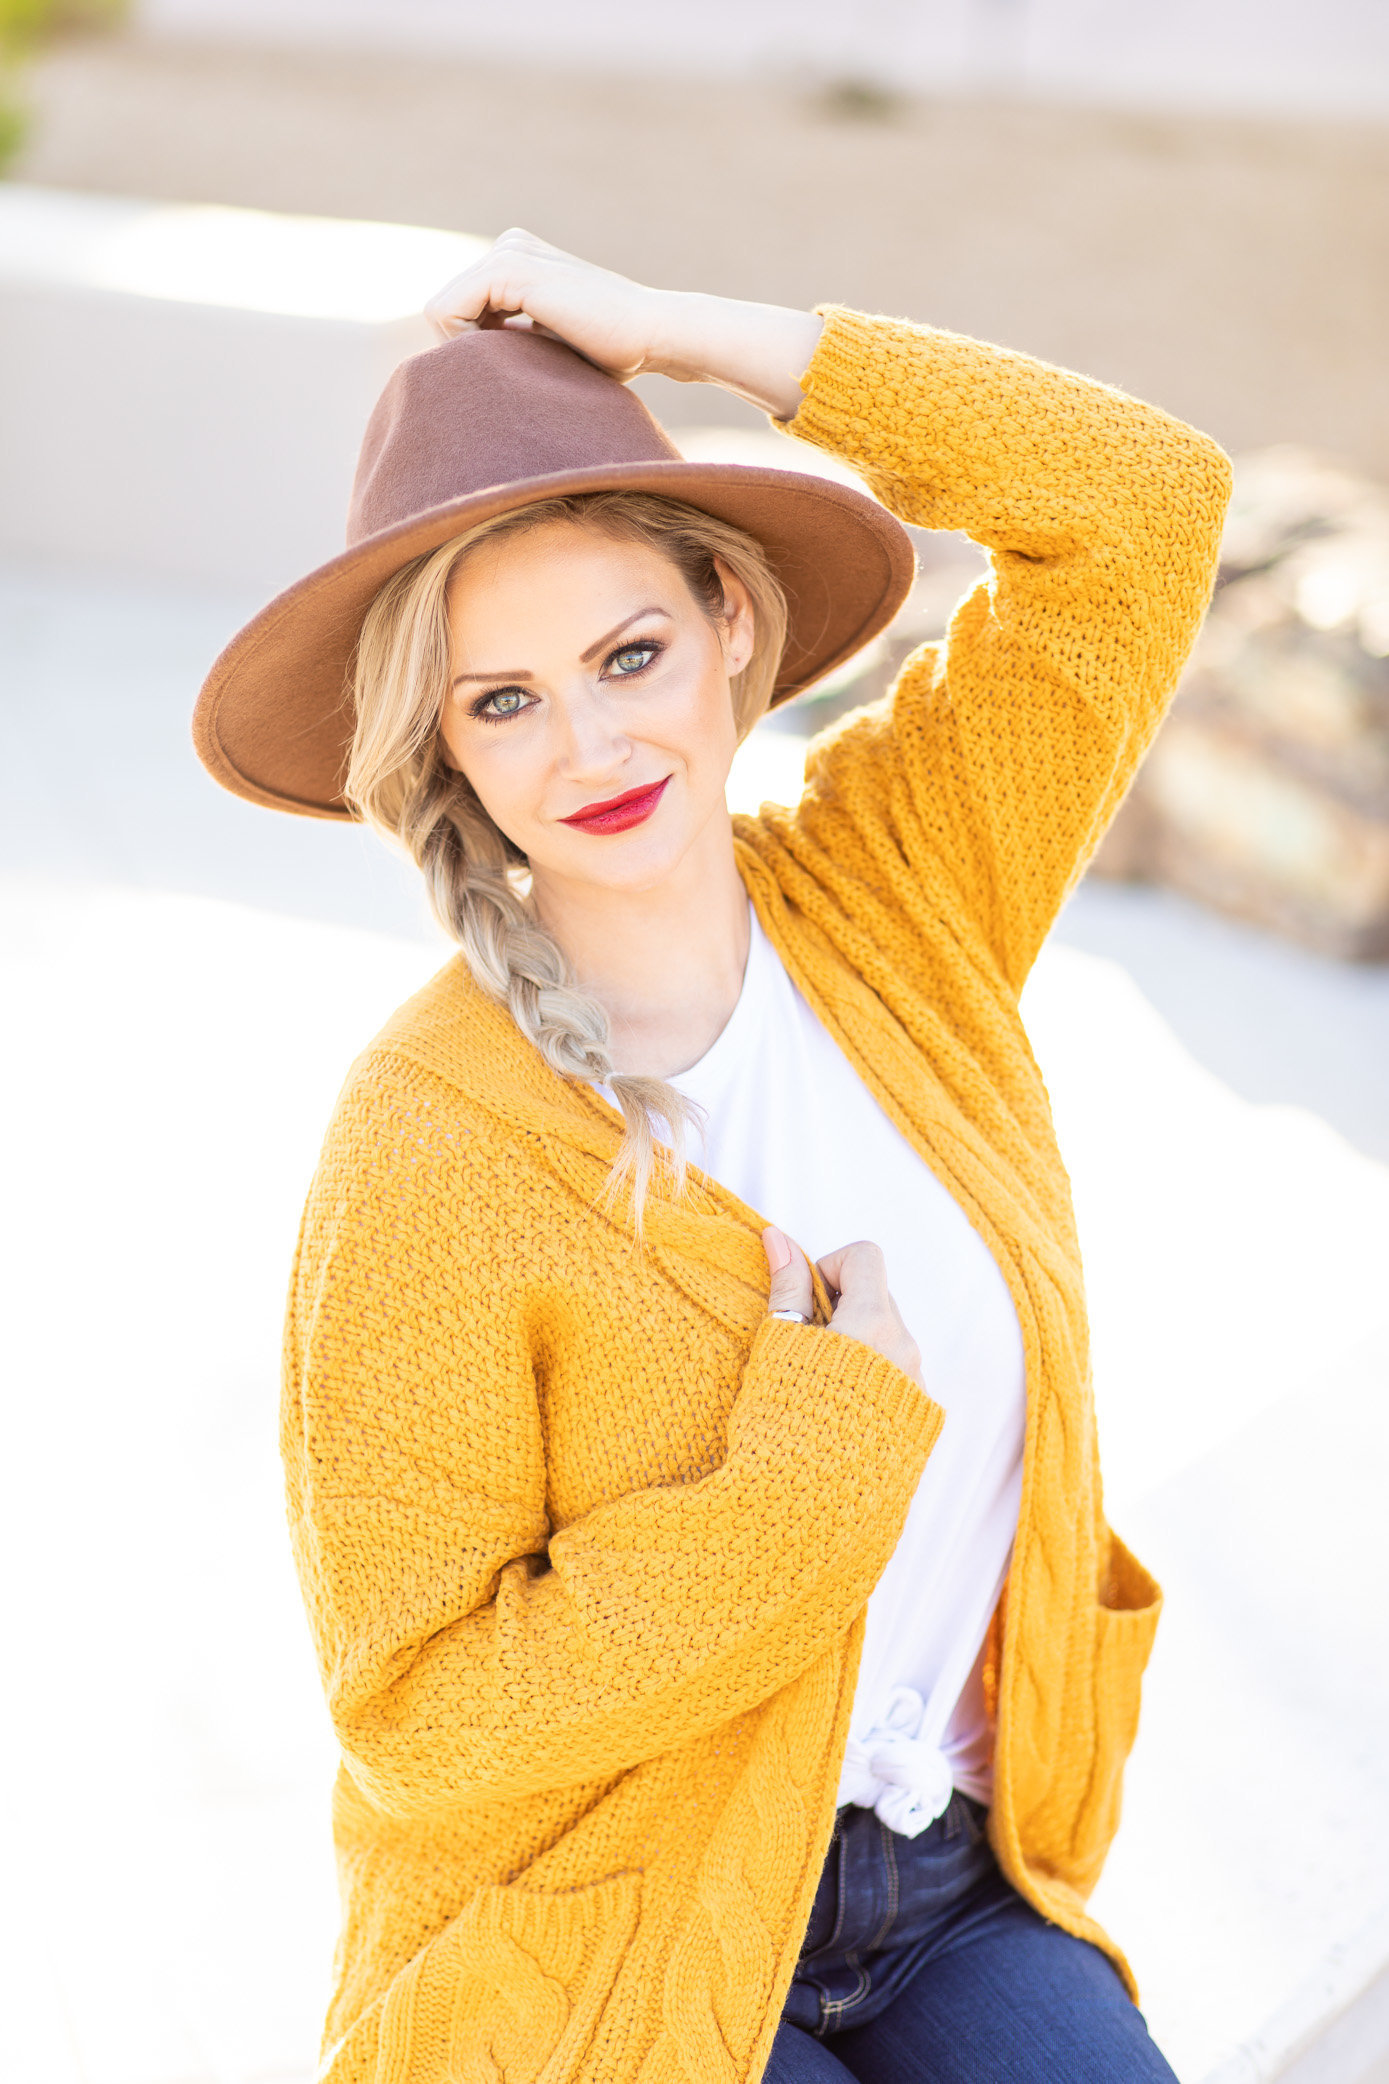 Heather Godby Wearing brown hat and mustard yellow cardigan